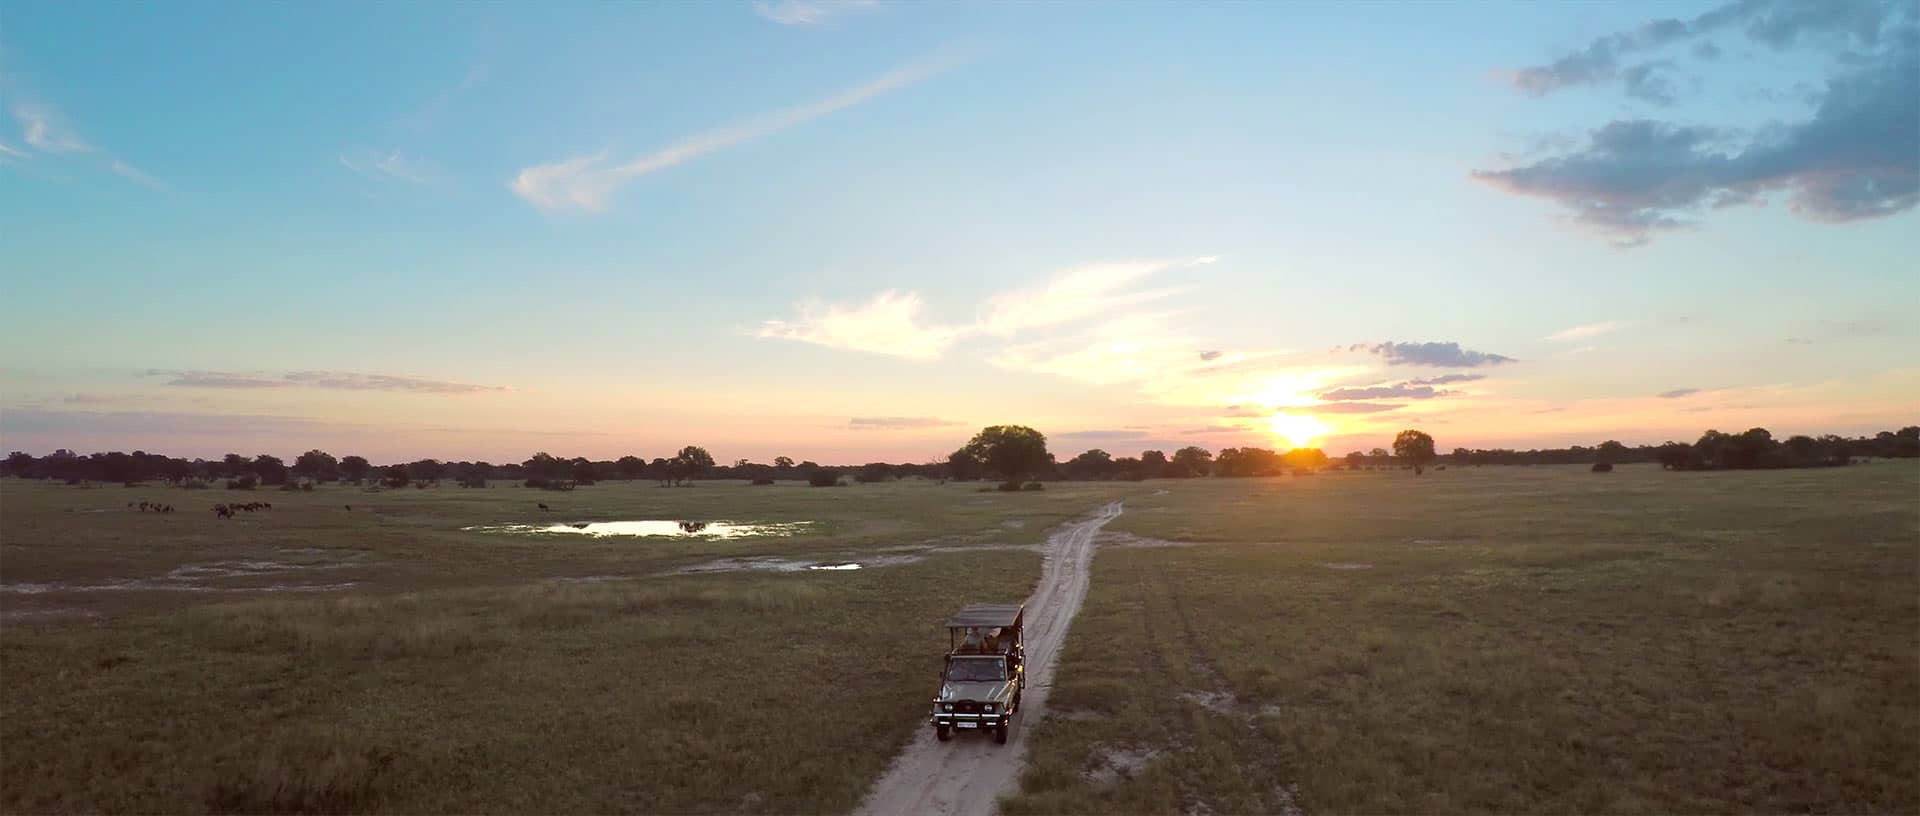 Game drive at Hwange National park The Hide